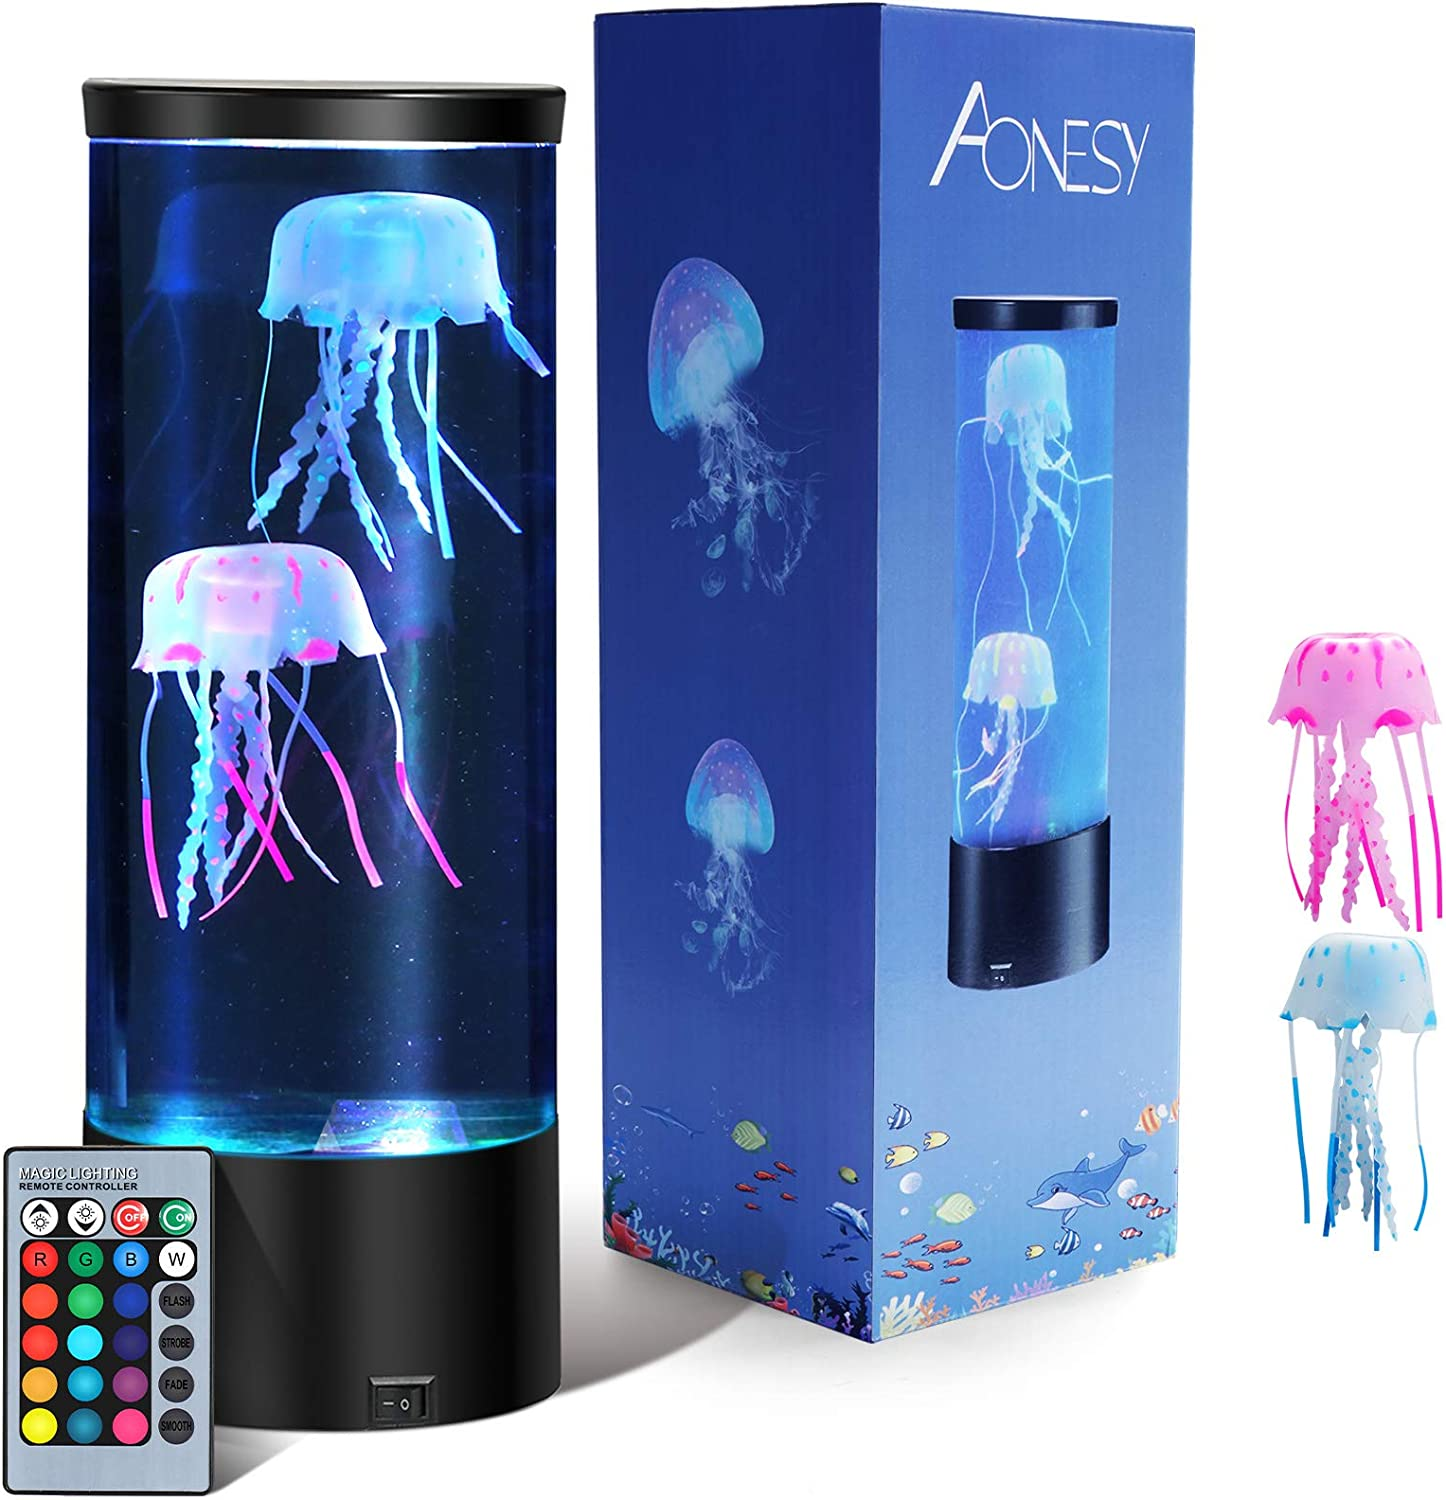 Jellyfish Lamp with Remote Control RGB 16 Color Changing Lights- LED Jellyfish Aquarium Lava Lamp Night Light for Kids Dad Mom-Home Office Room Desk Decor Lamp for Christmas Birthday Gifts (Black)